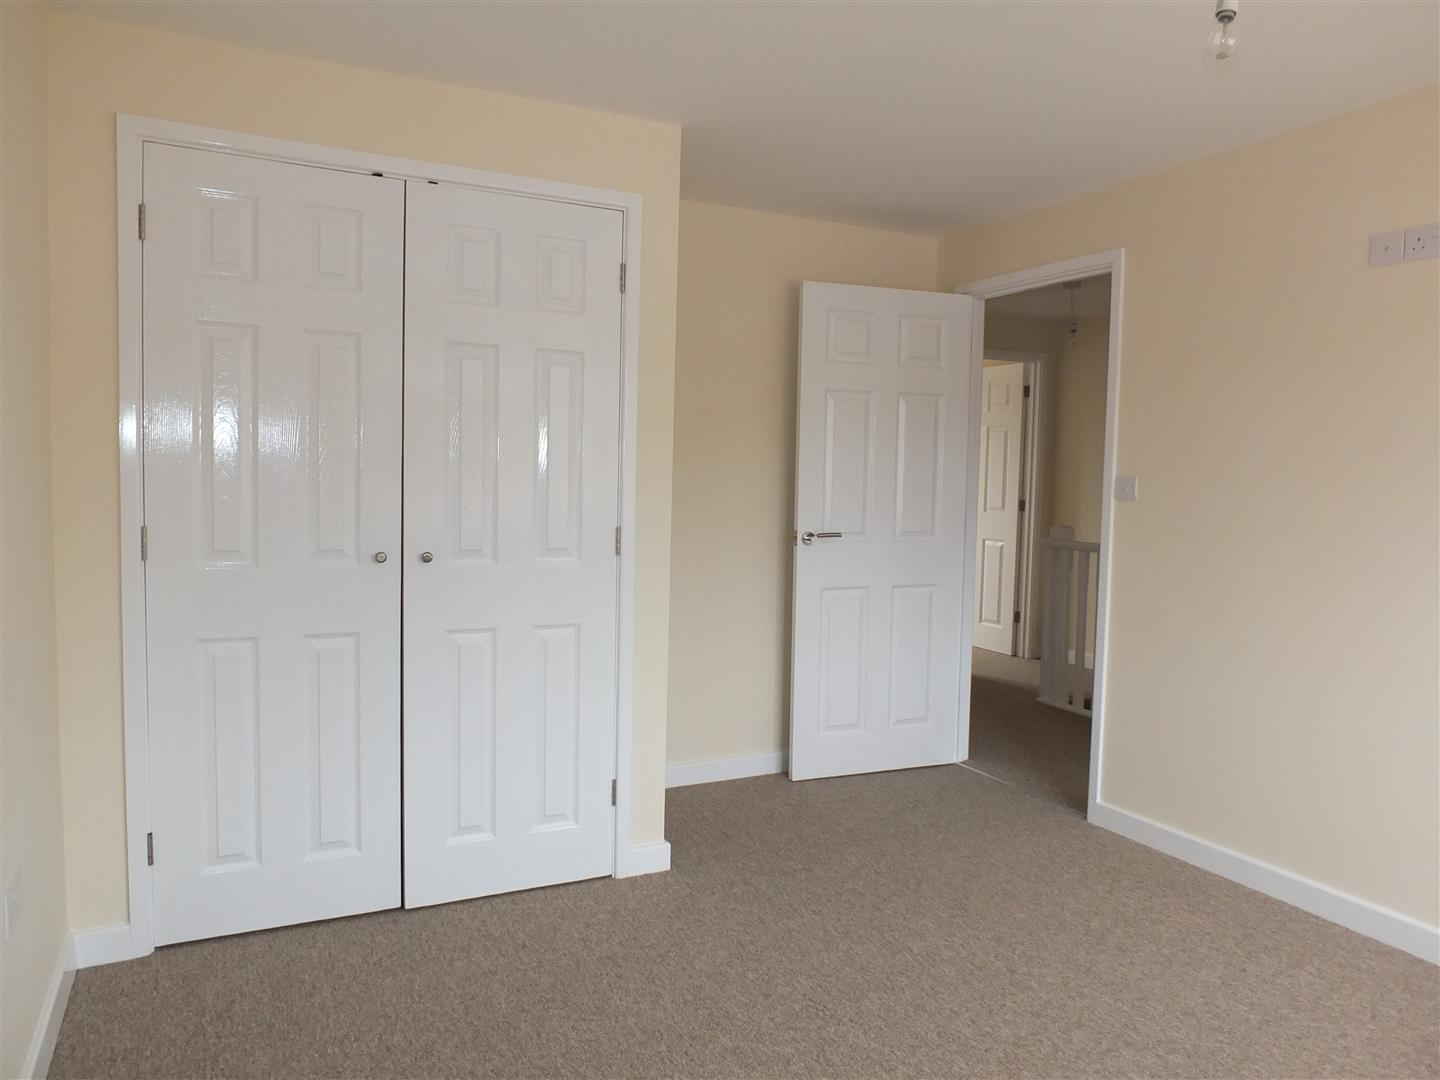 3 bed house to rent in Long Sutton, PE12 9LE  - Property Image 3